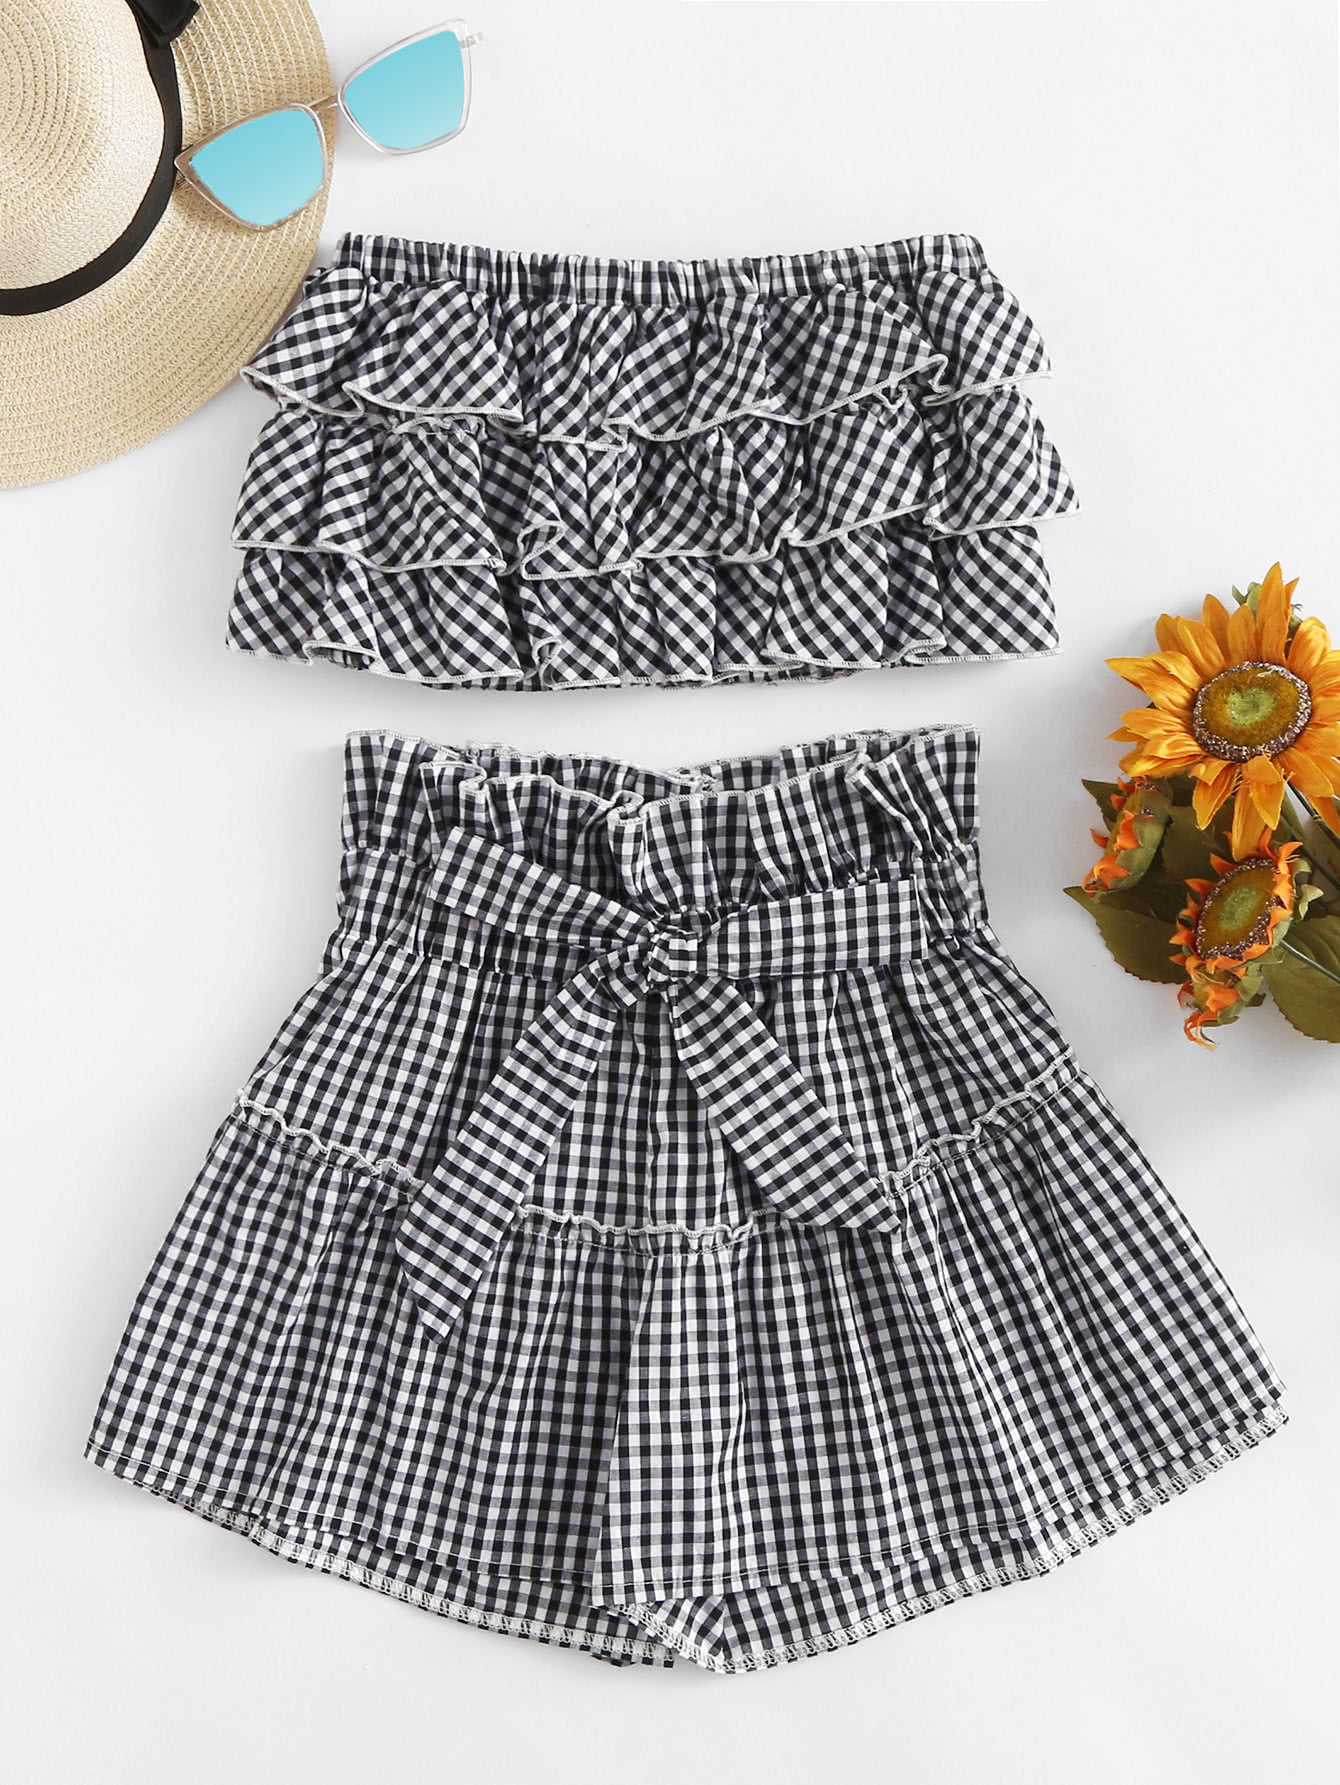 Tiered Frill Gingham Bandeau Top With Shorts allover florals bow tie detail frill top with shorts